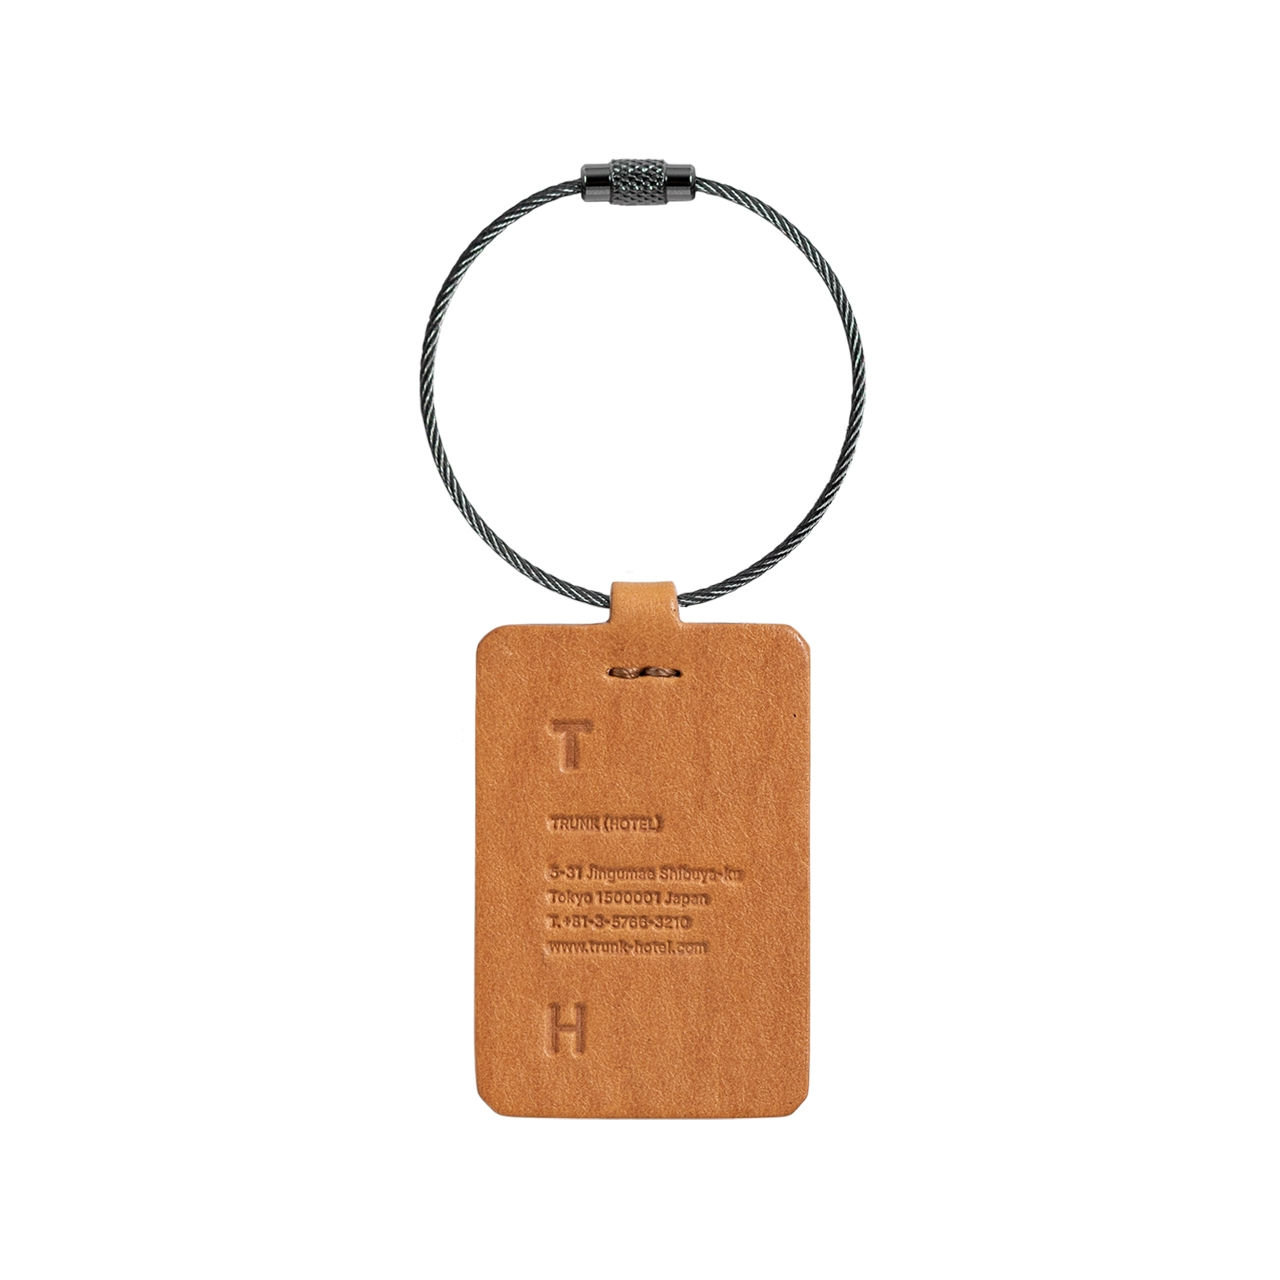 Upcycled Leather Key Chain